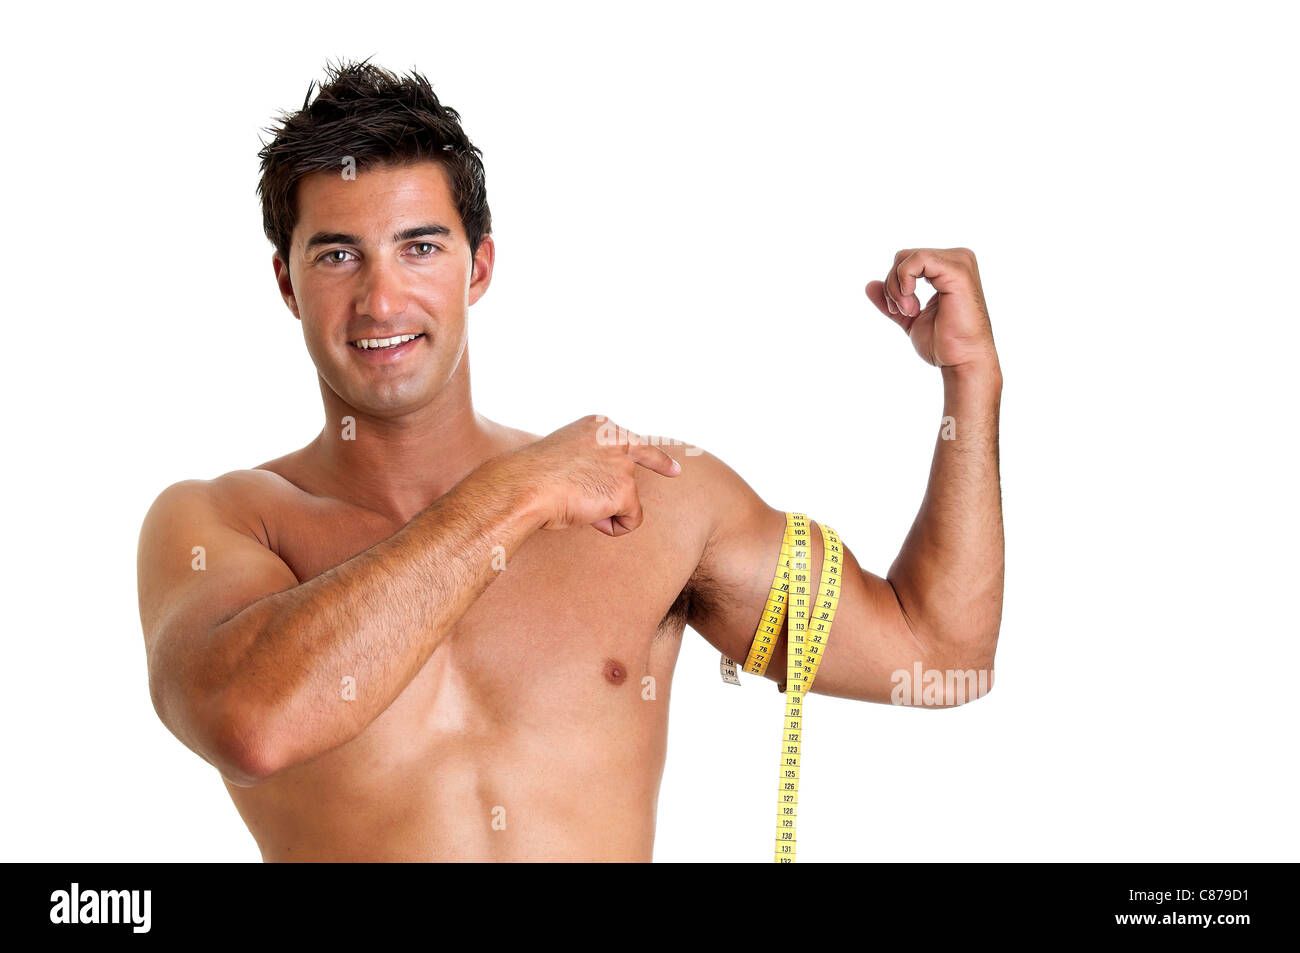 Muscular young man with measuring tape - Stock Image